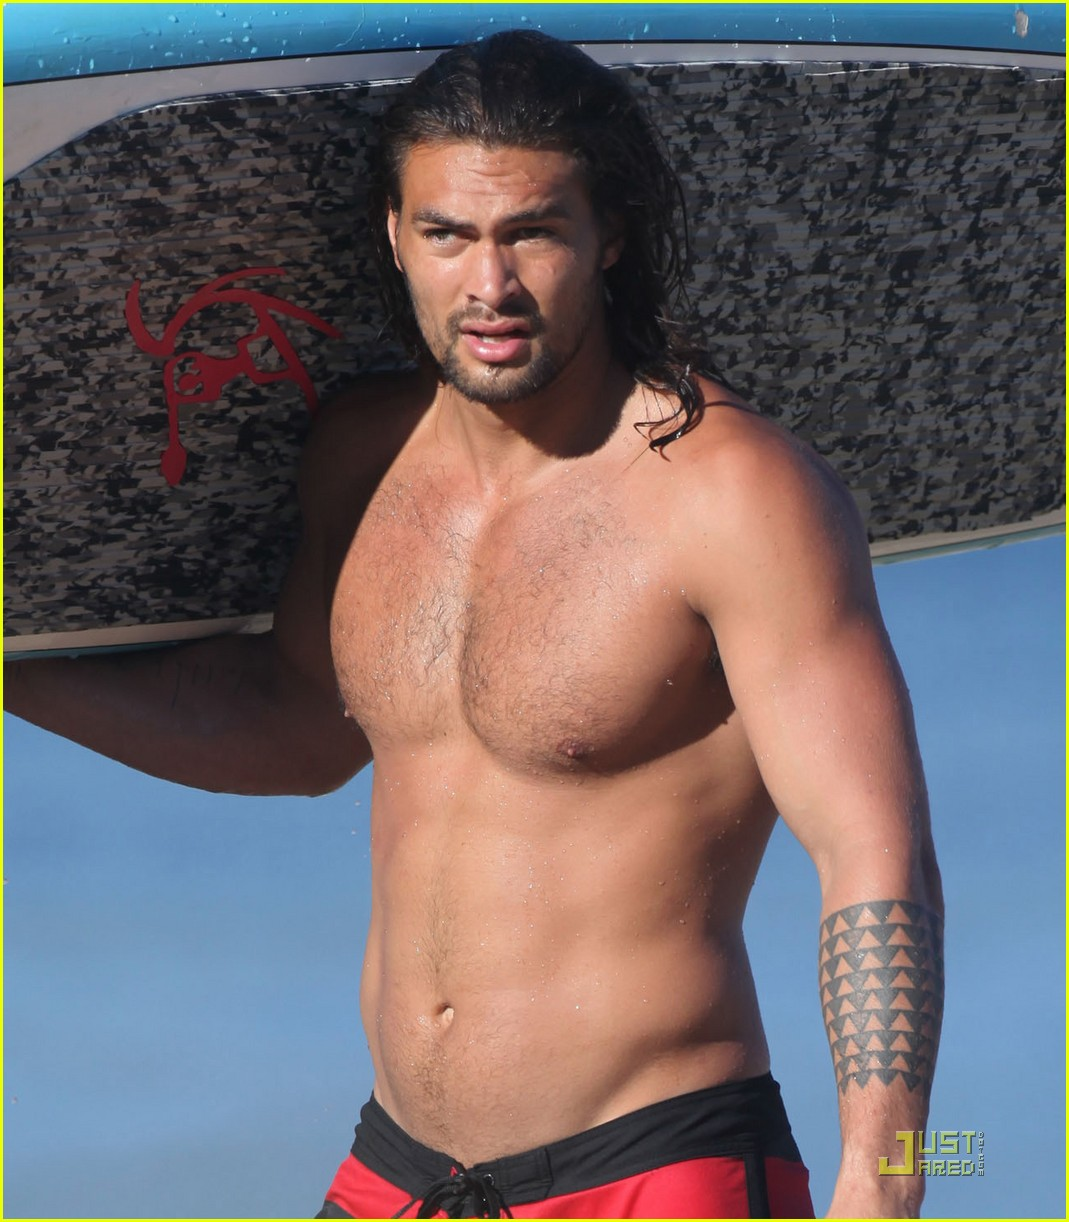 Jason Momoa: Shirtless ساحل سمندر, بیچ Six Pack!